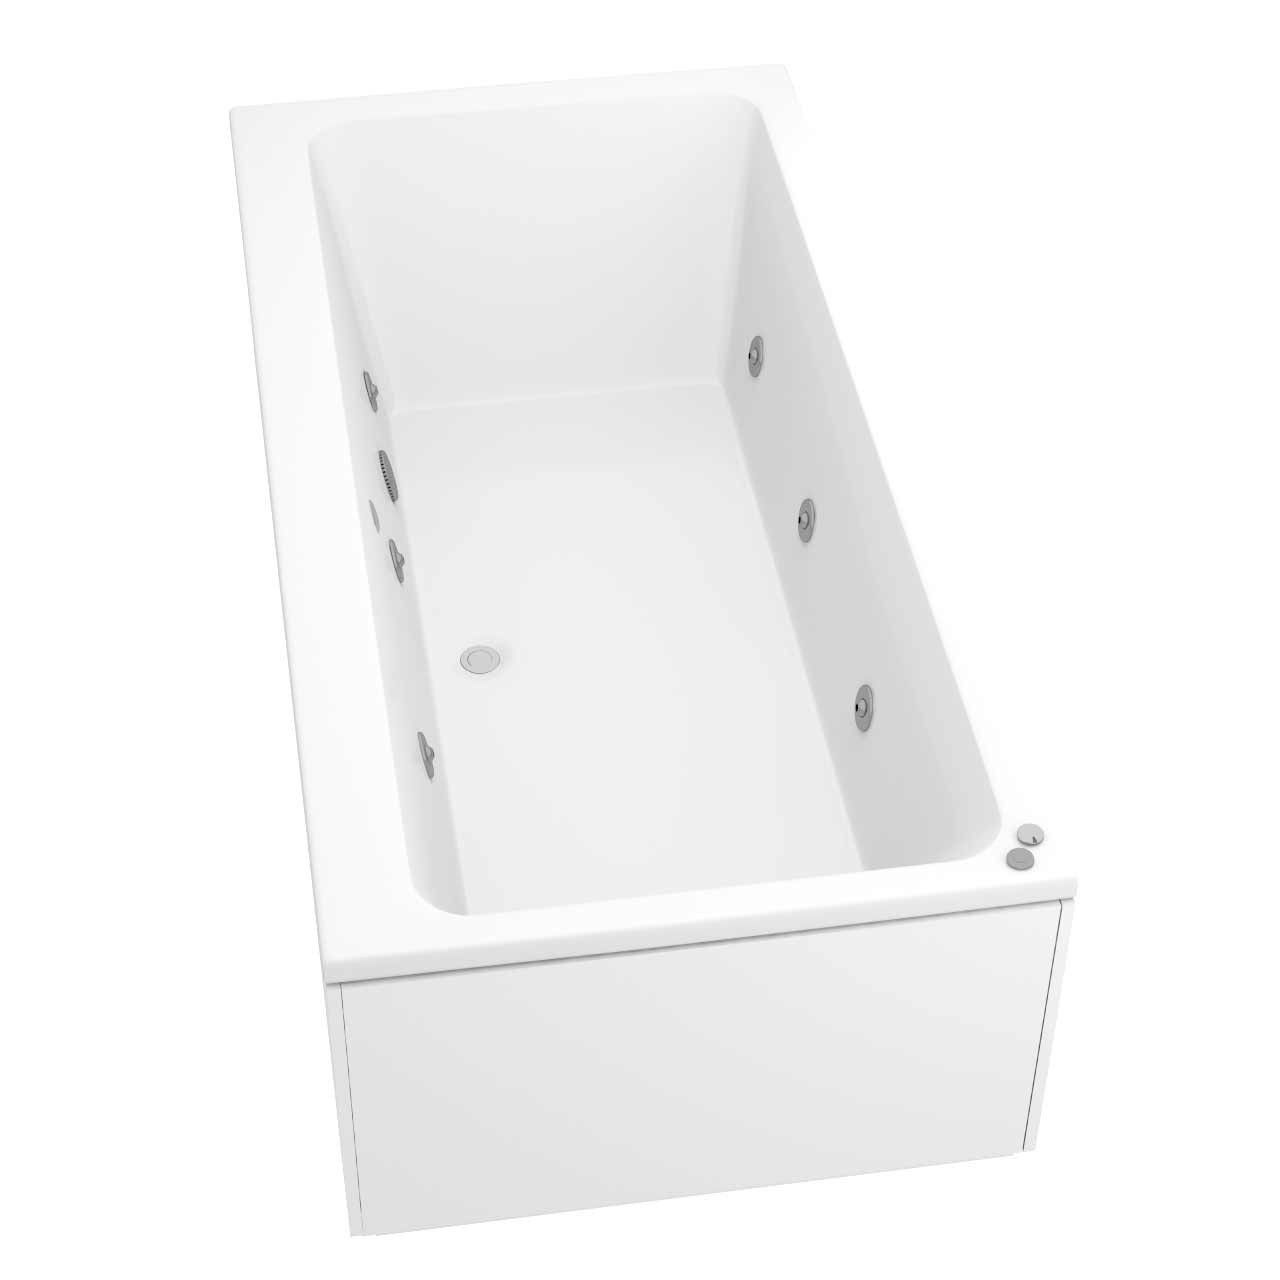 Verna Centre Tap 6 Jet Chrome V-Tec Whirlpool Bath 1800x900mm